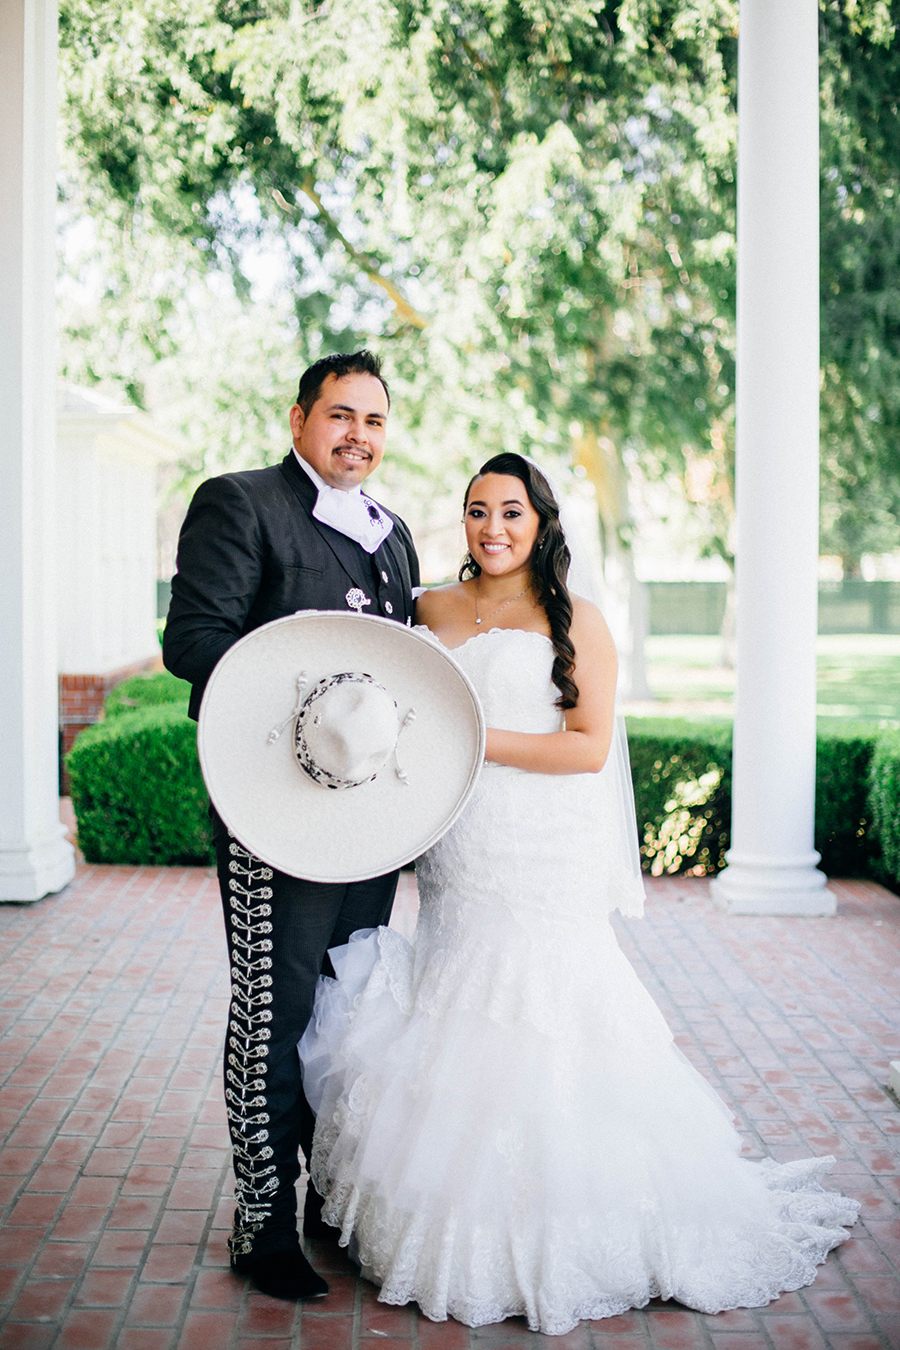 mexican-charro-wedding-crestmoremanor-riverside-losangeles-by-gabrielagandara-45